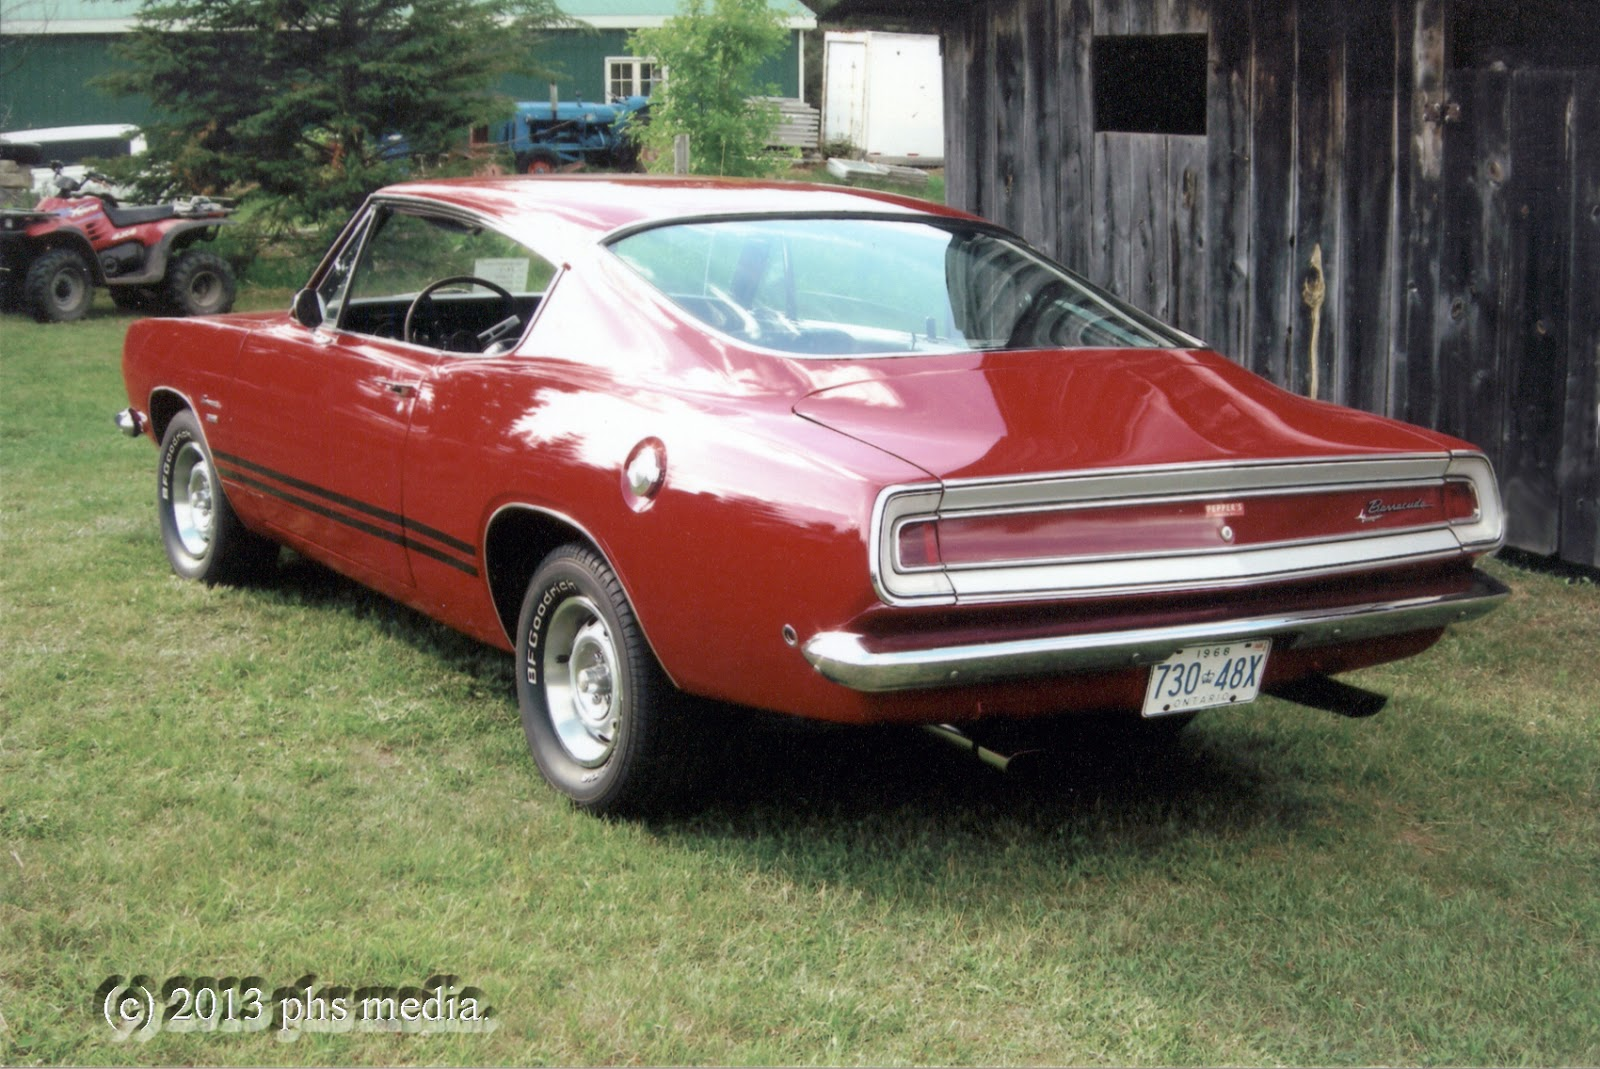 1968 Plymouth Barracuda 318 4 Speed Fastback Phscollectorcarworld 1970 Cuda Wiring Diagram Sold New In Syracuse York The Car Was Excellently Maintained